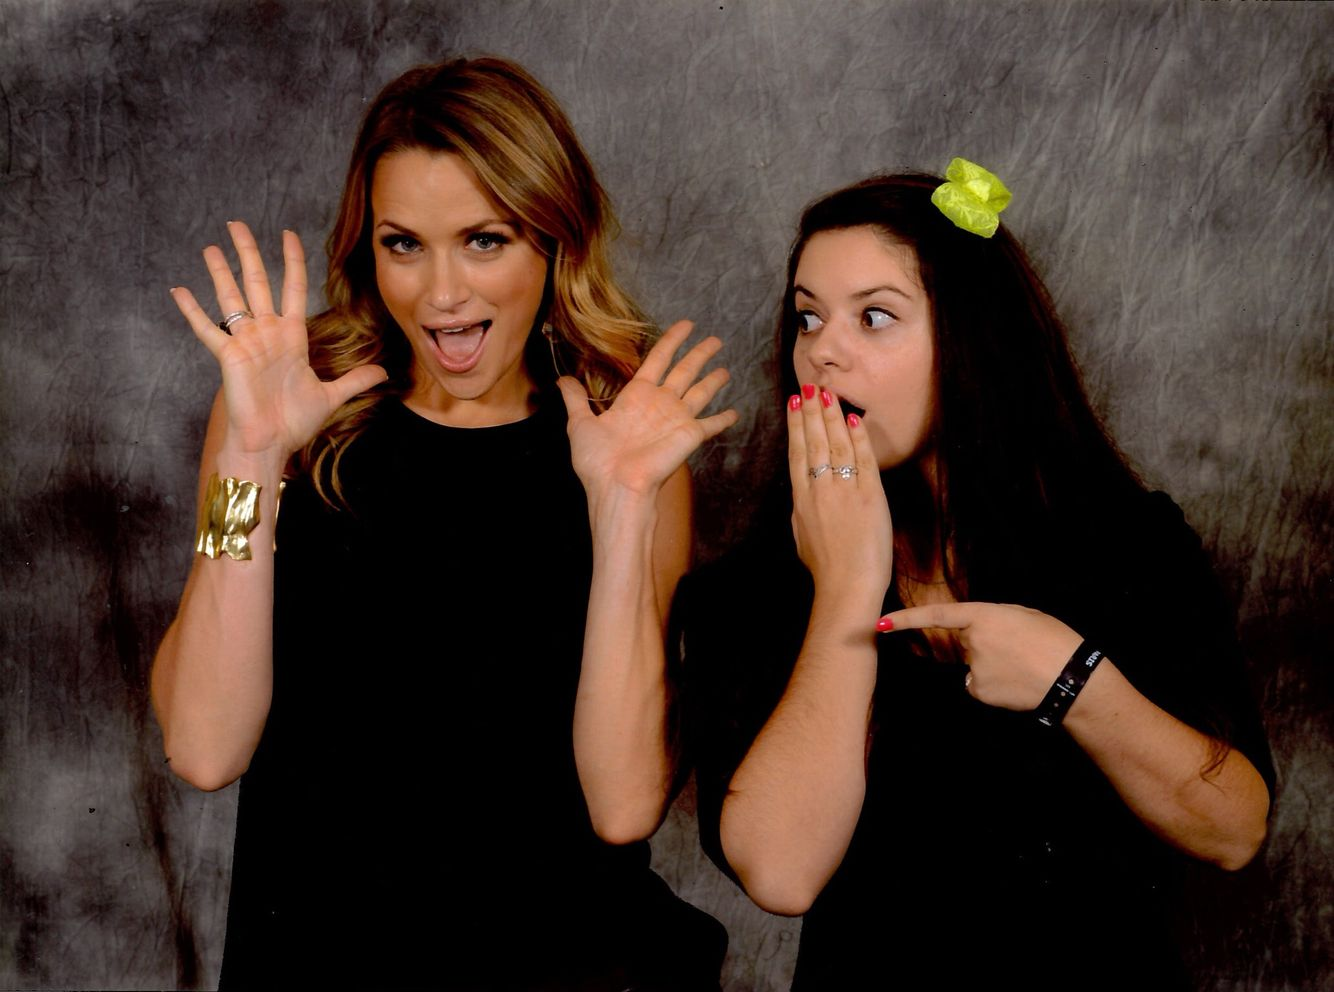 "20.10.2013: Shantel VanStaten is amazing! She is game for anything. She is so simple and kind. And really goofy too. :) Meeting her was so great because of all that. This is the funniest pic I took that weekend, I love it. She stepped in when Sophia Bush annonced she could not be with us that weekend. I love Sophia. Brooke and Nathan are my favorite characters of the show. But I was really happy when Shantel was announced as a guest. I coudn't have asked for a better ""replacement"". :)"